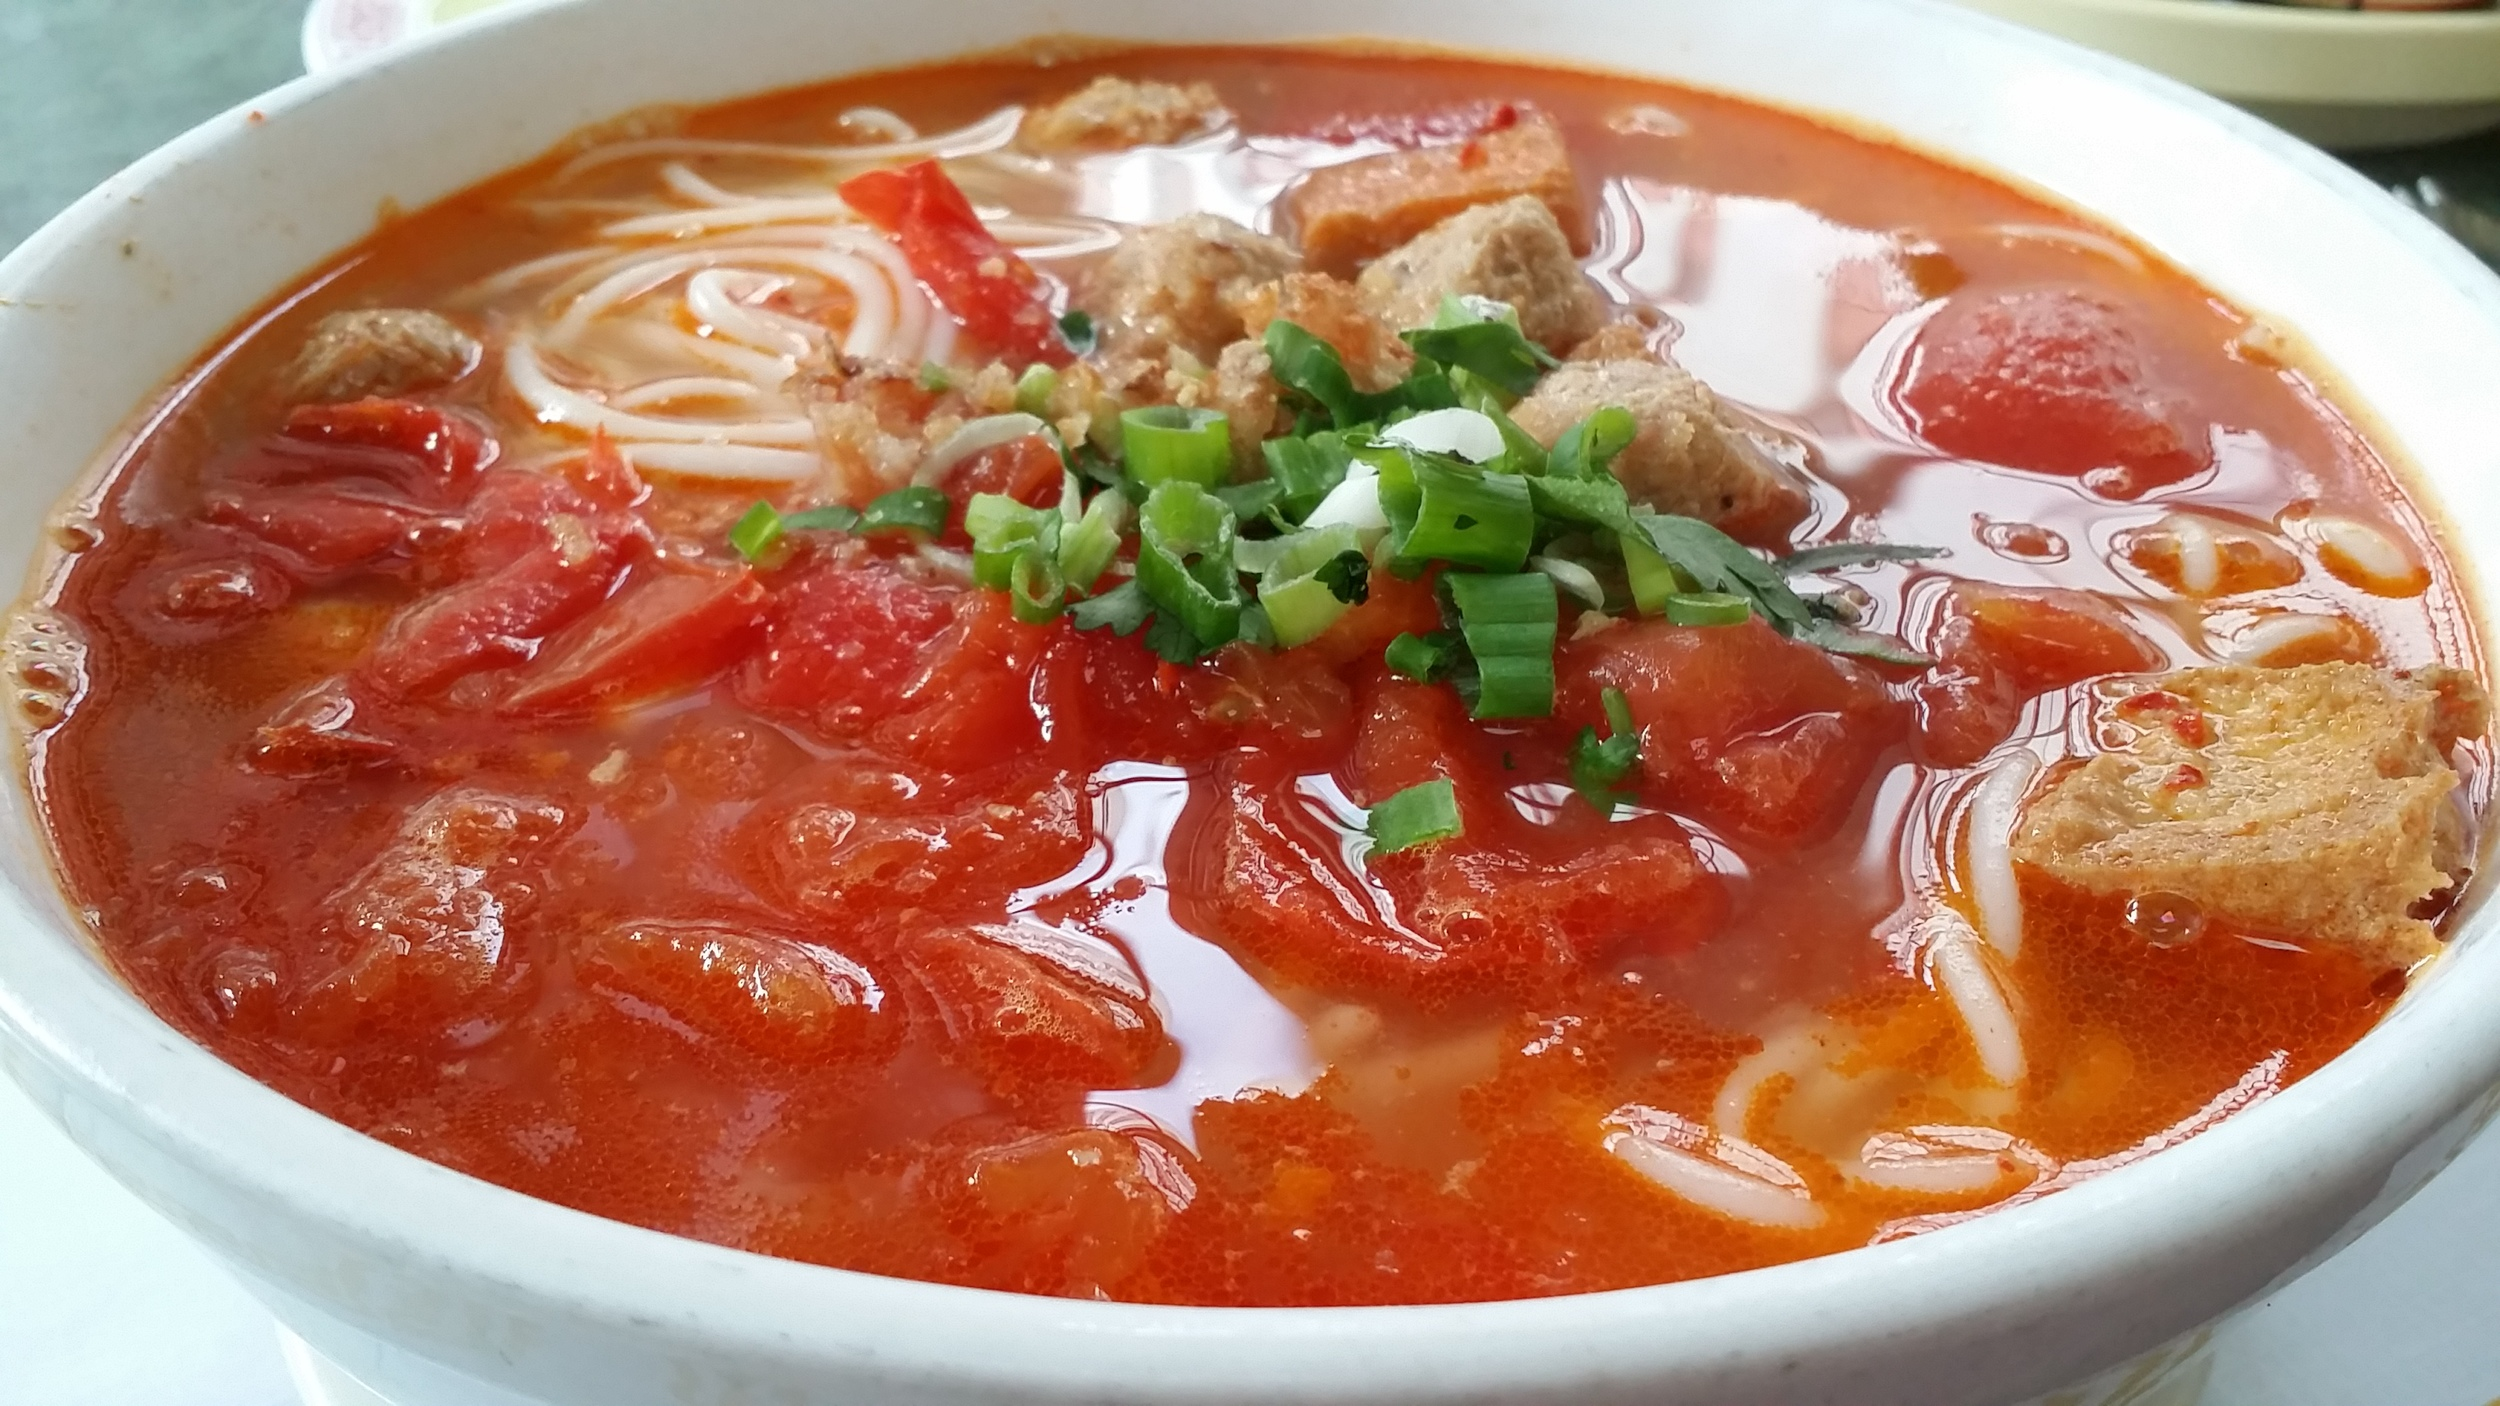 Savory, Sweet, Sour & Spicy Tomato Broth